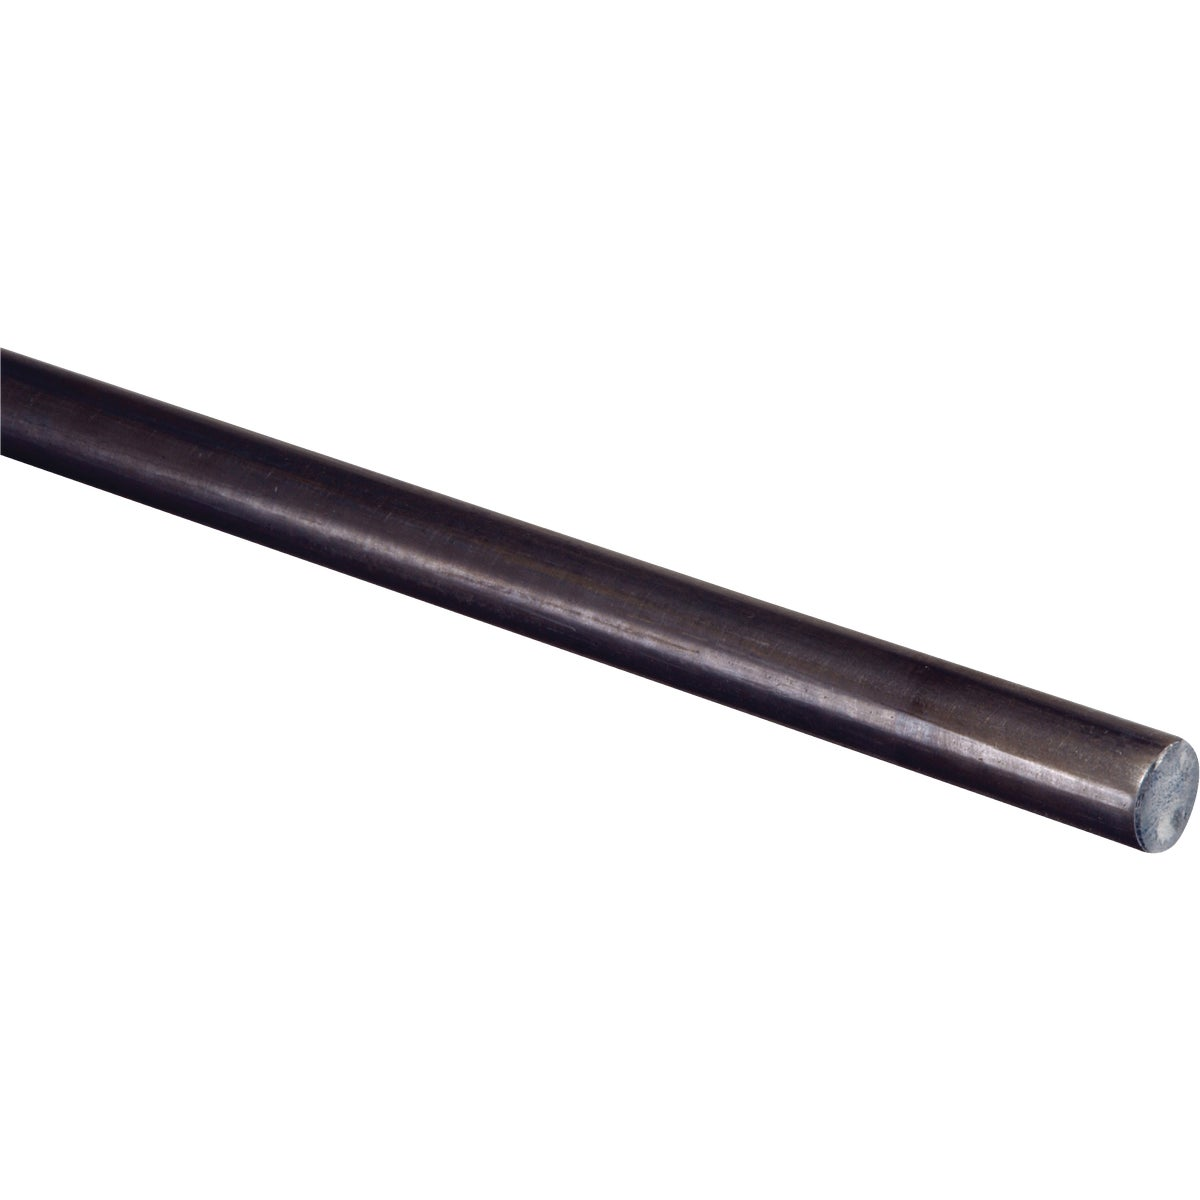 1/8X3' CR RND STEEL ROD - N301242 by National Mfg Co